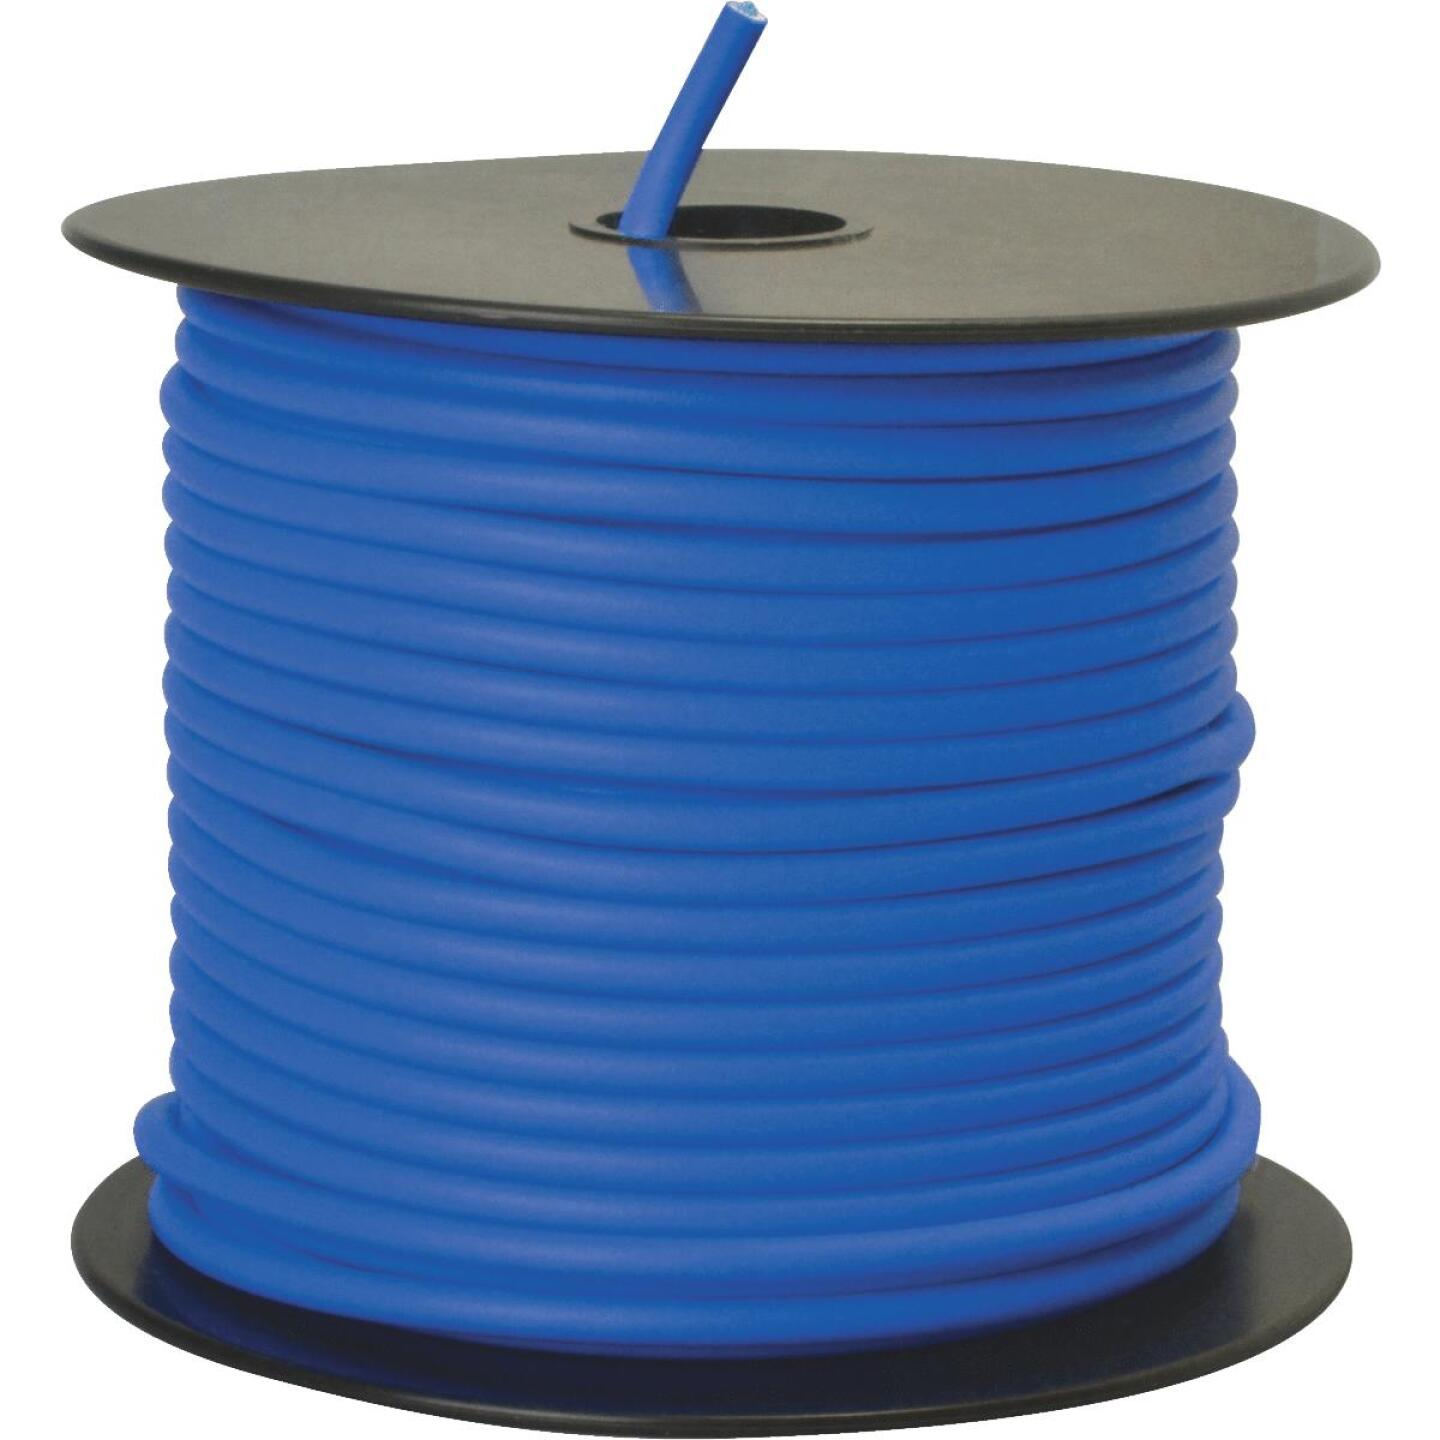 ROAD POWER 100 Ft. 12 Ga. PVC-Coated Primary Wire, Blue Image 1